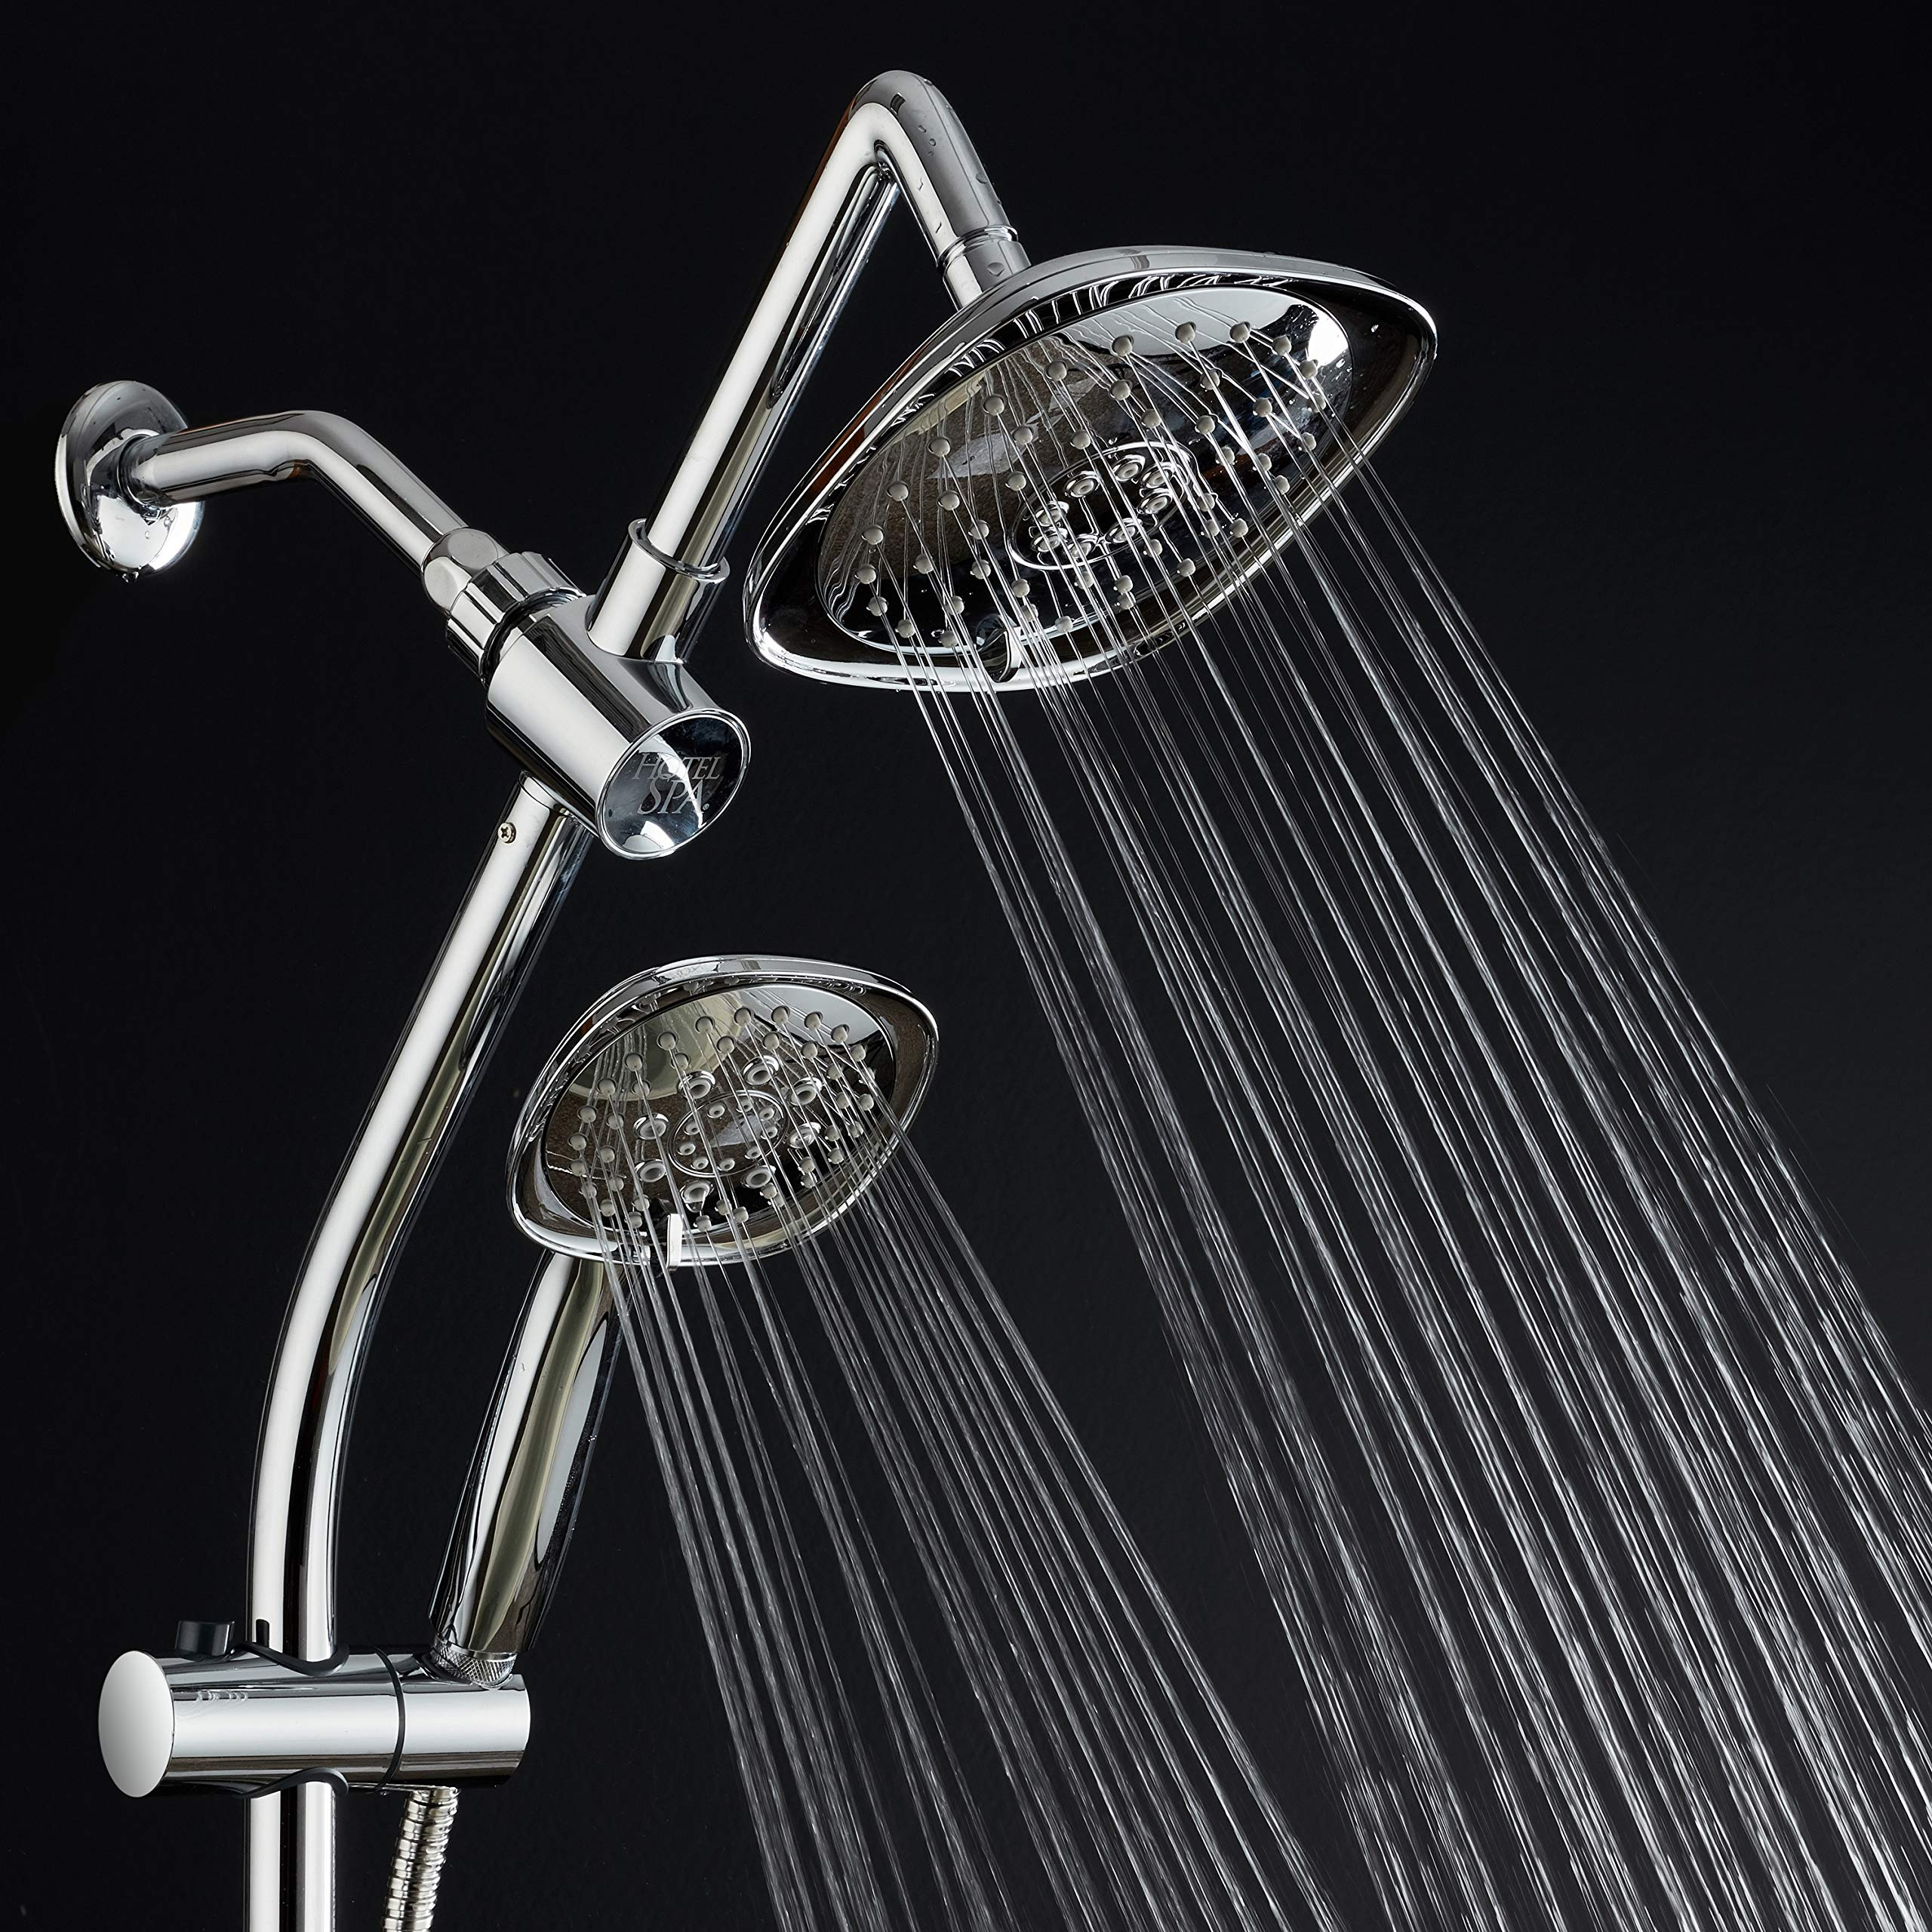 Spa Station 34'' Adjustable Drill-Free Slide Bar with 48-setting Showerhead Combo & Height Extension Arm / 3-way Square Rain & Handheld Shower Head/Low Reach Diverter/Stainless Steel Hose/Chrome by Hotel Spa (Image #5)